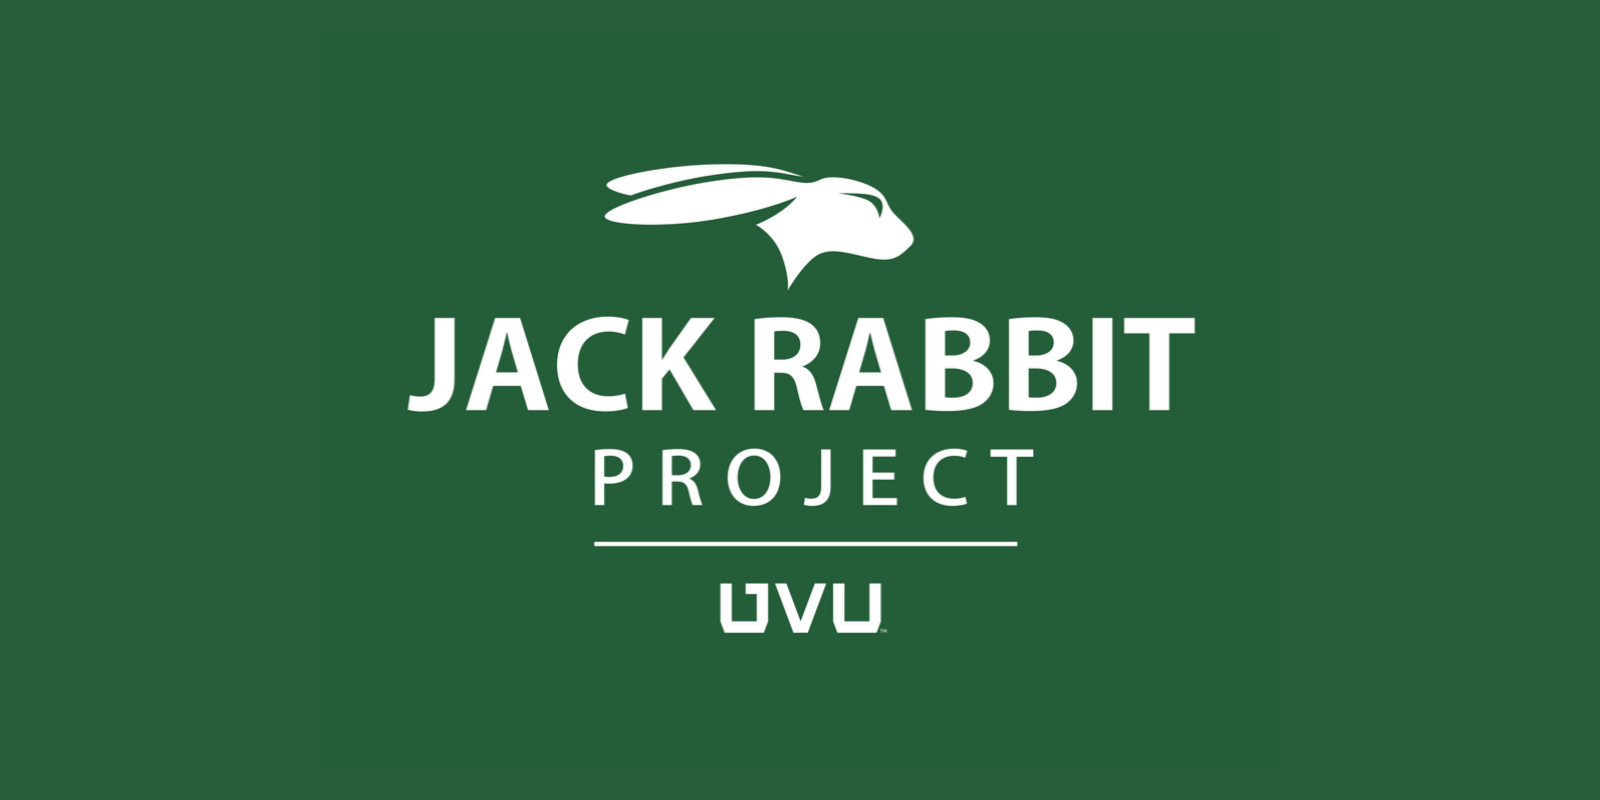 Jack Rabbit project logo with bunny head on top